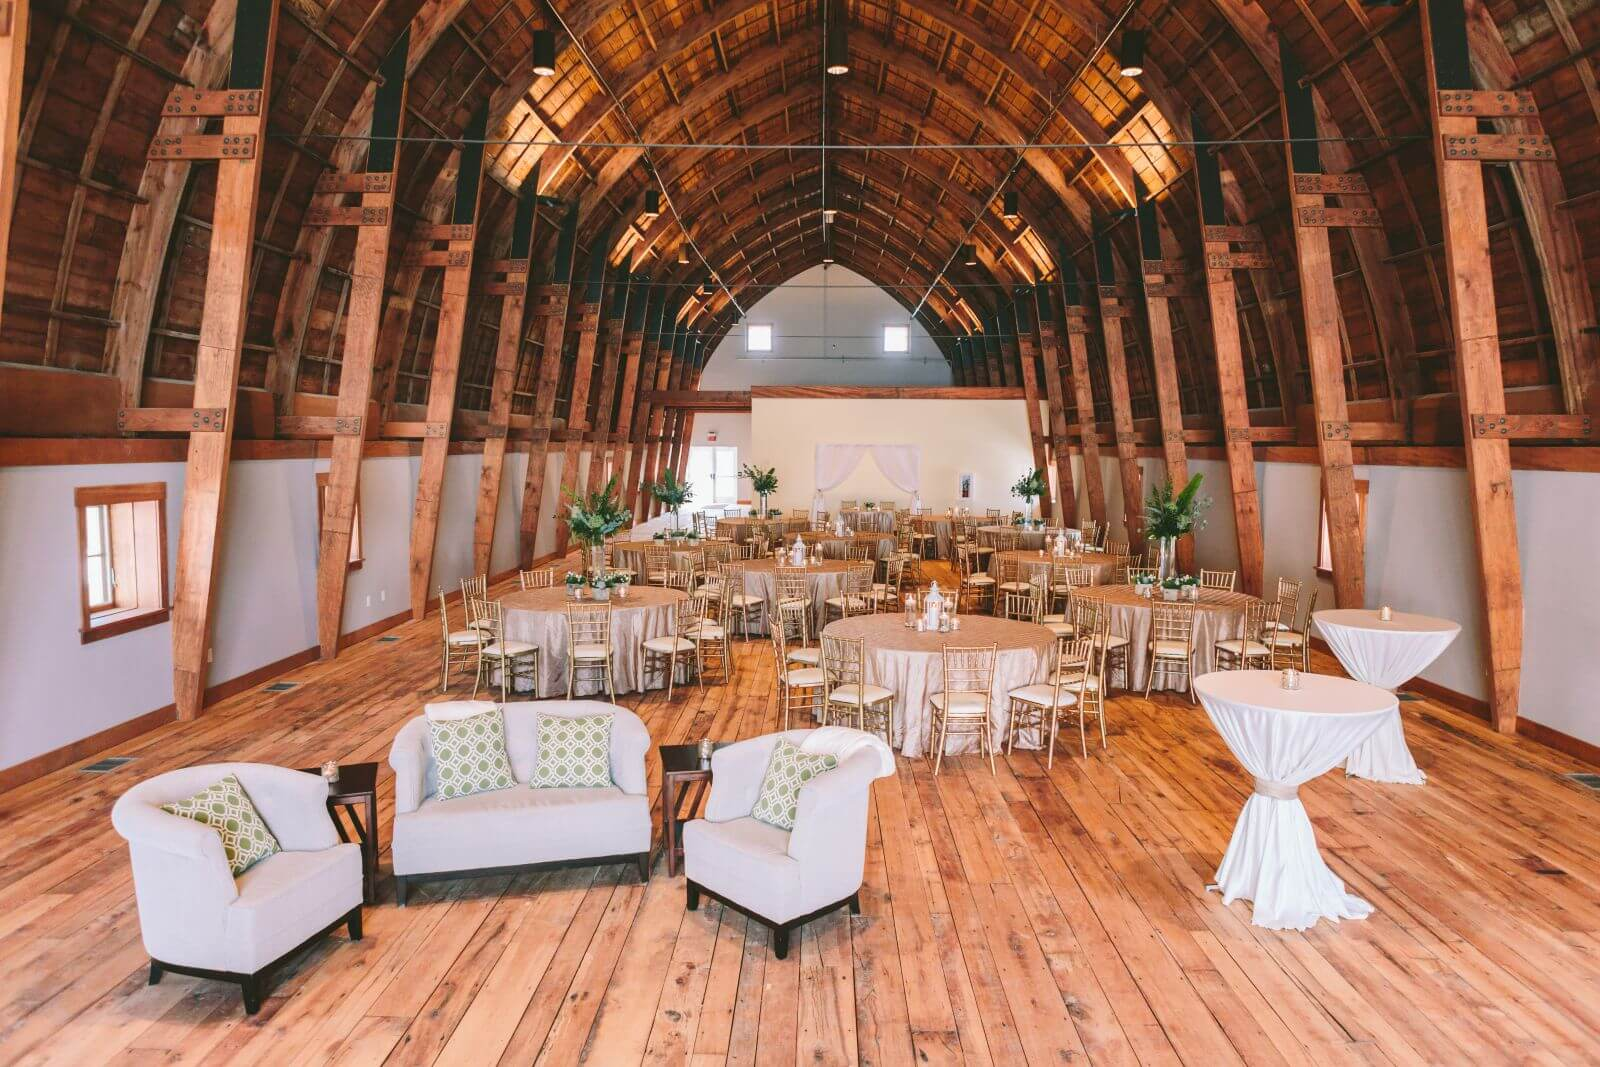 Cathedral Barn wedding venue, Traverse City